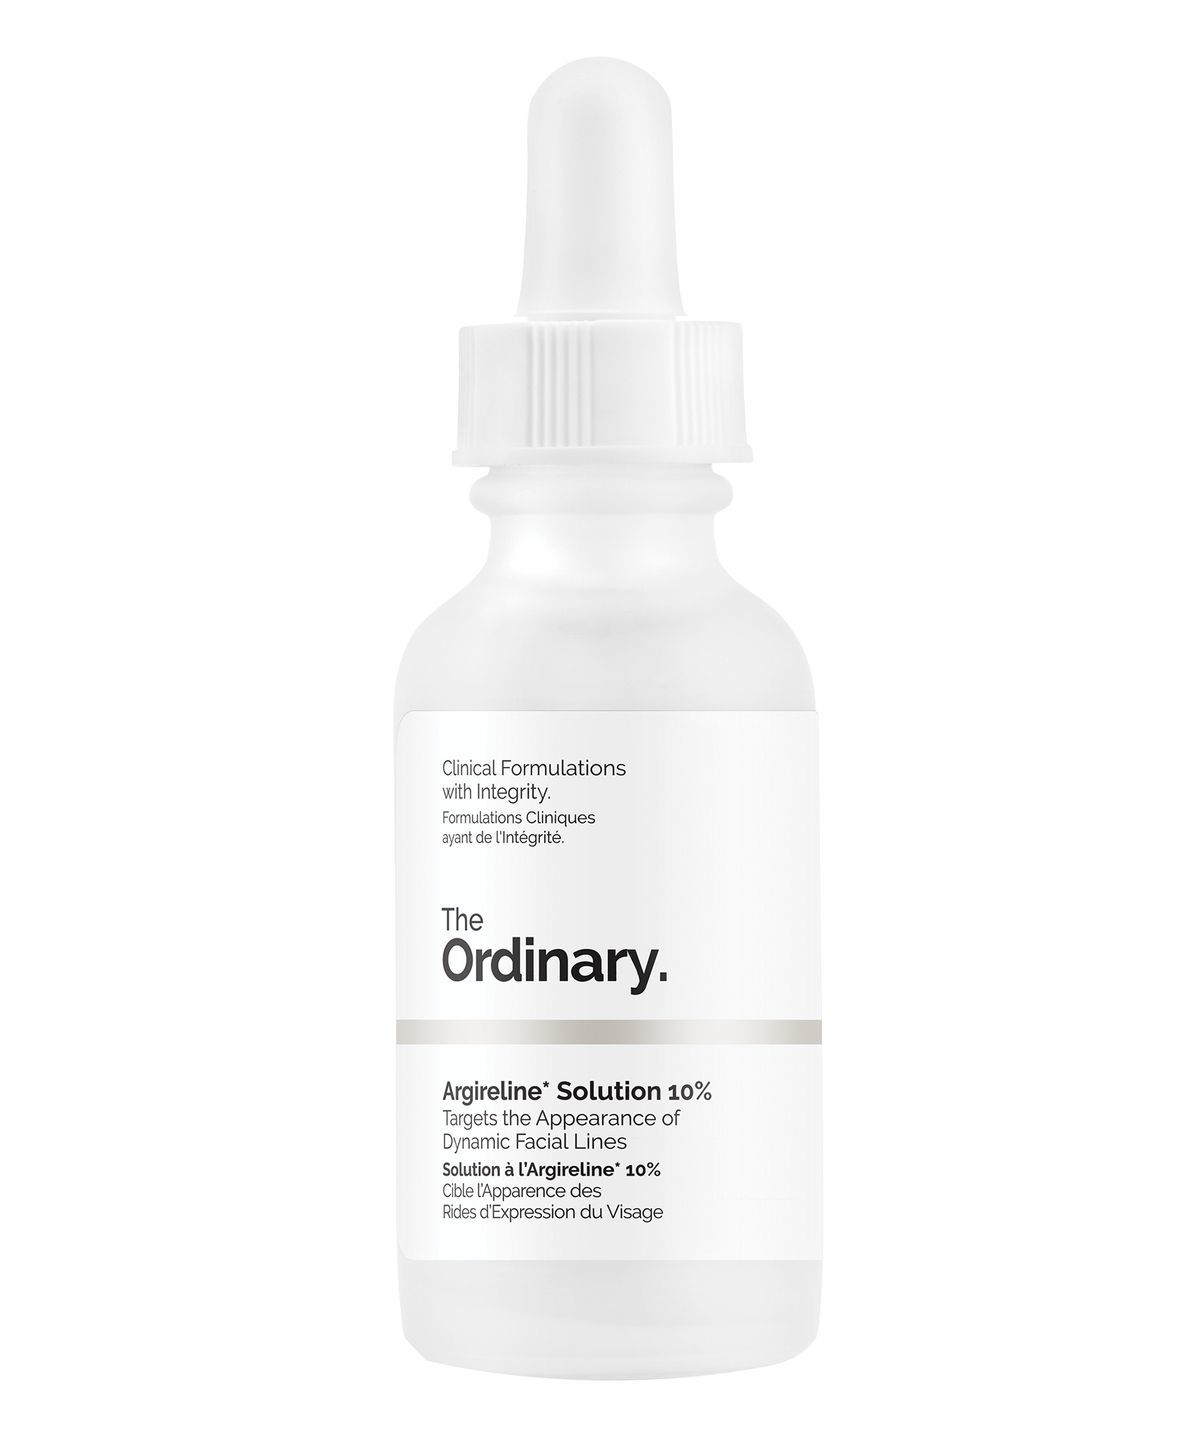 The Ordinary Argireline Solution 10% сыворотка для лица 30 мл